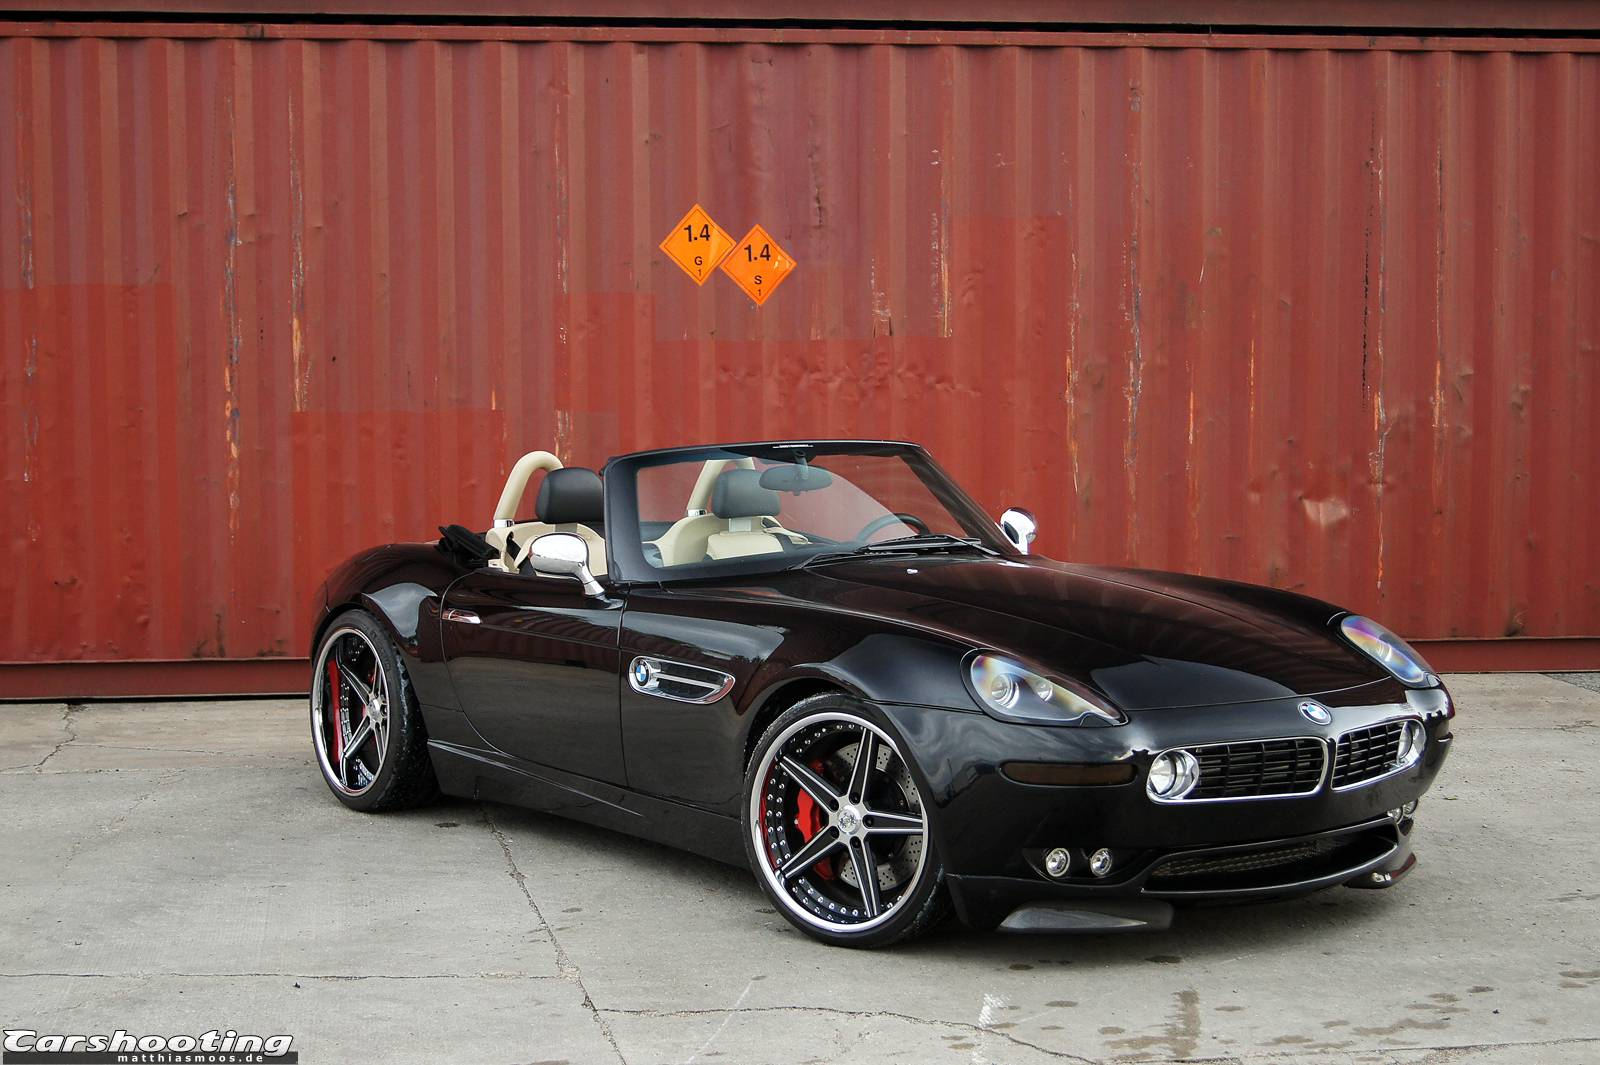 2013 G Power Bmw Z8 Supercharger Dark Cars Wallpapers